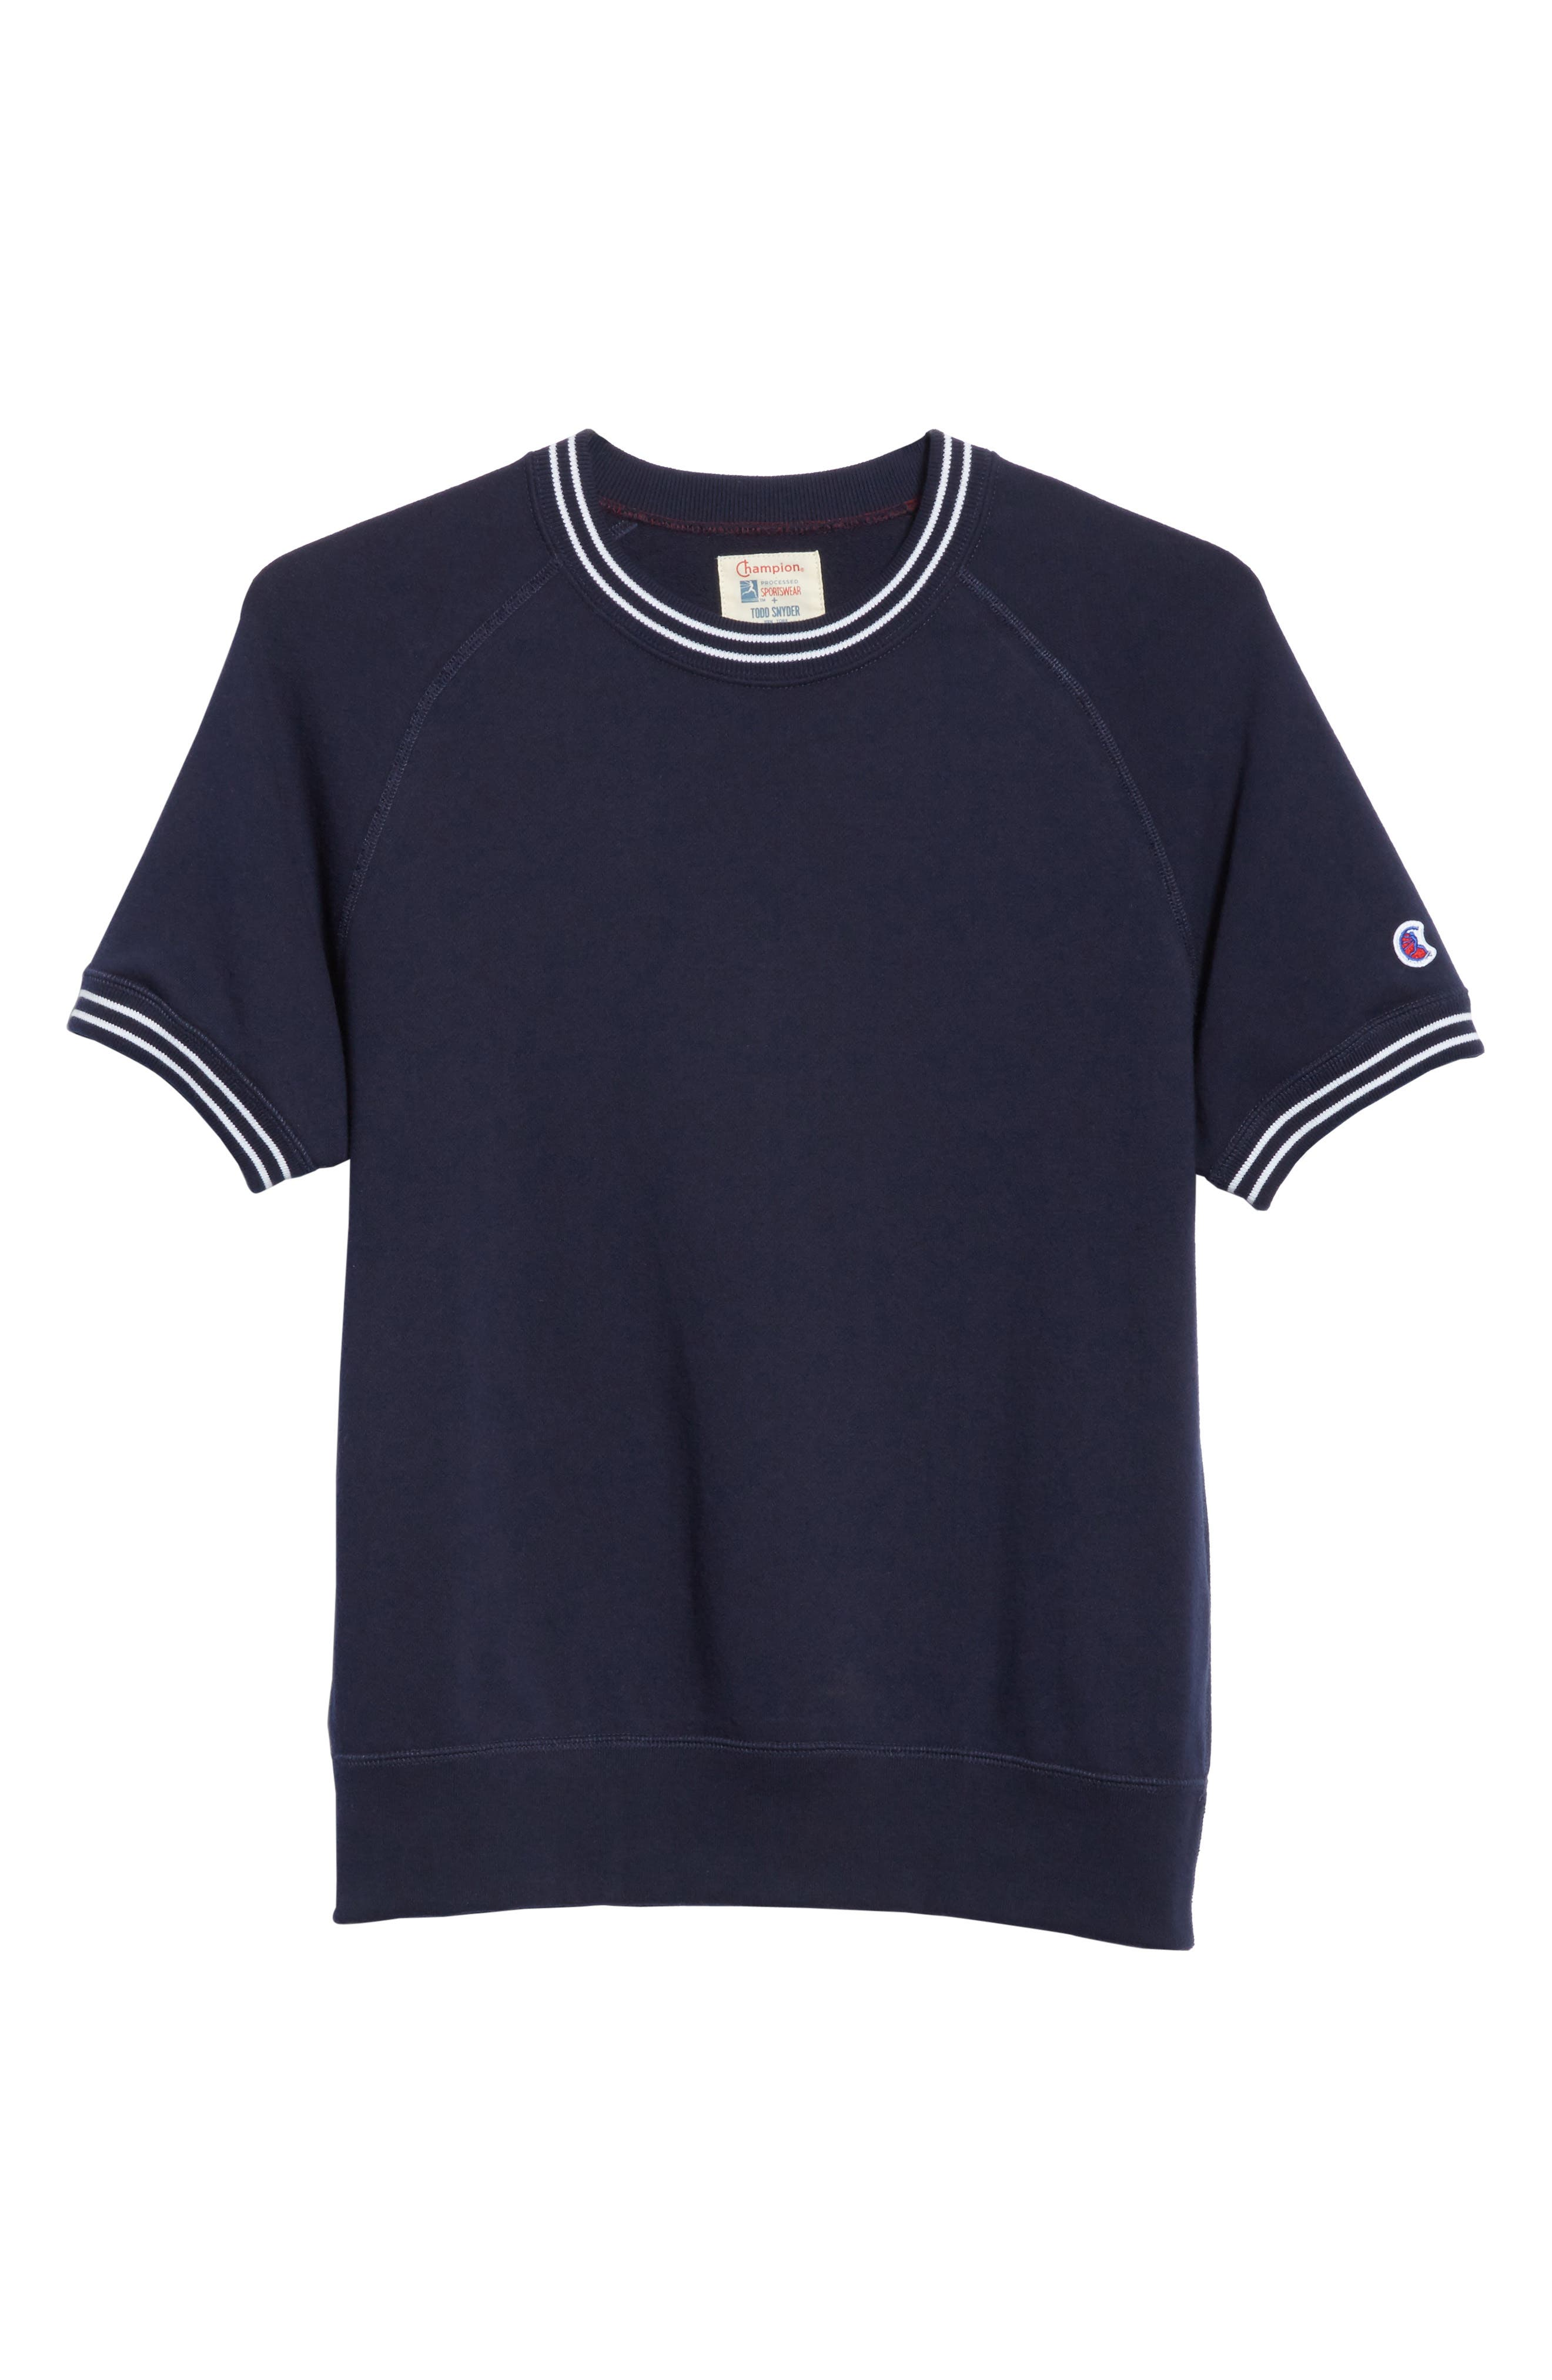 + Champion Stripe Rib Short Sleeve Sweatshirt,                             Alternate thumbnail 6, color,                             410